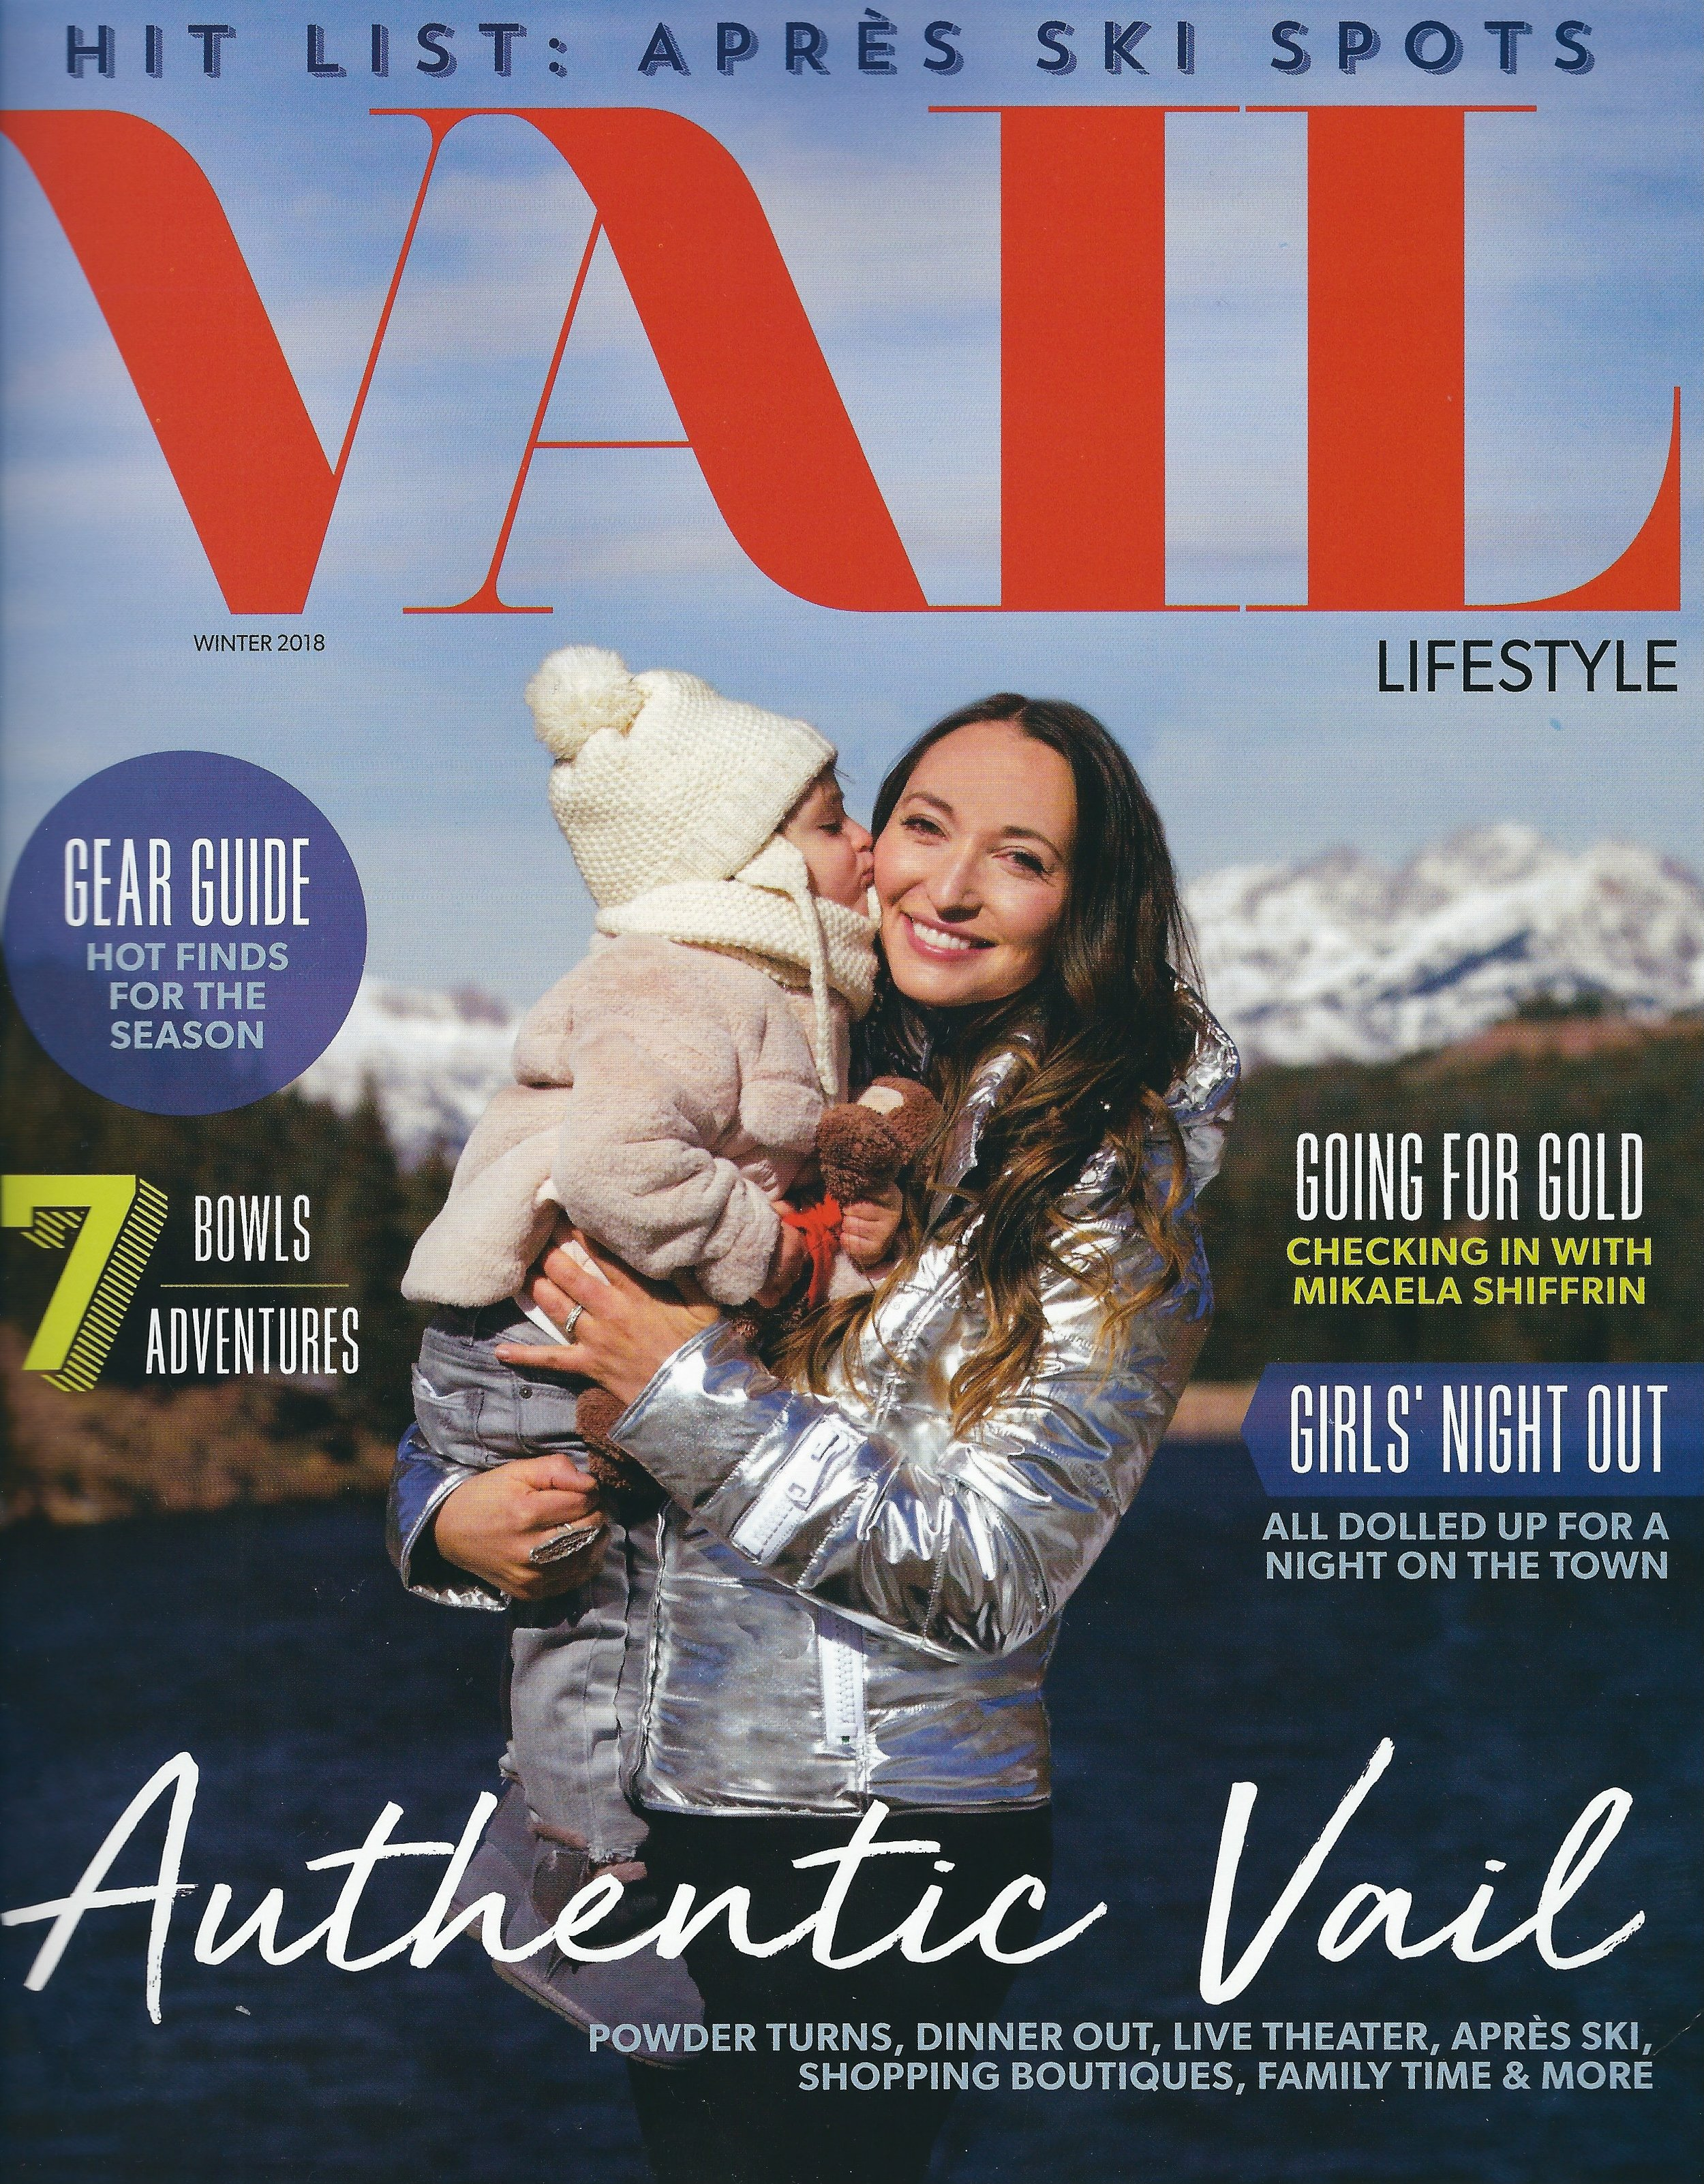 Vail-Lifestyle-Winter-2018-Cover.jpeg